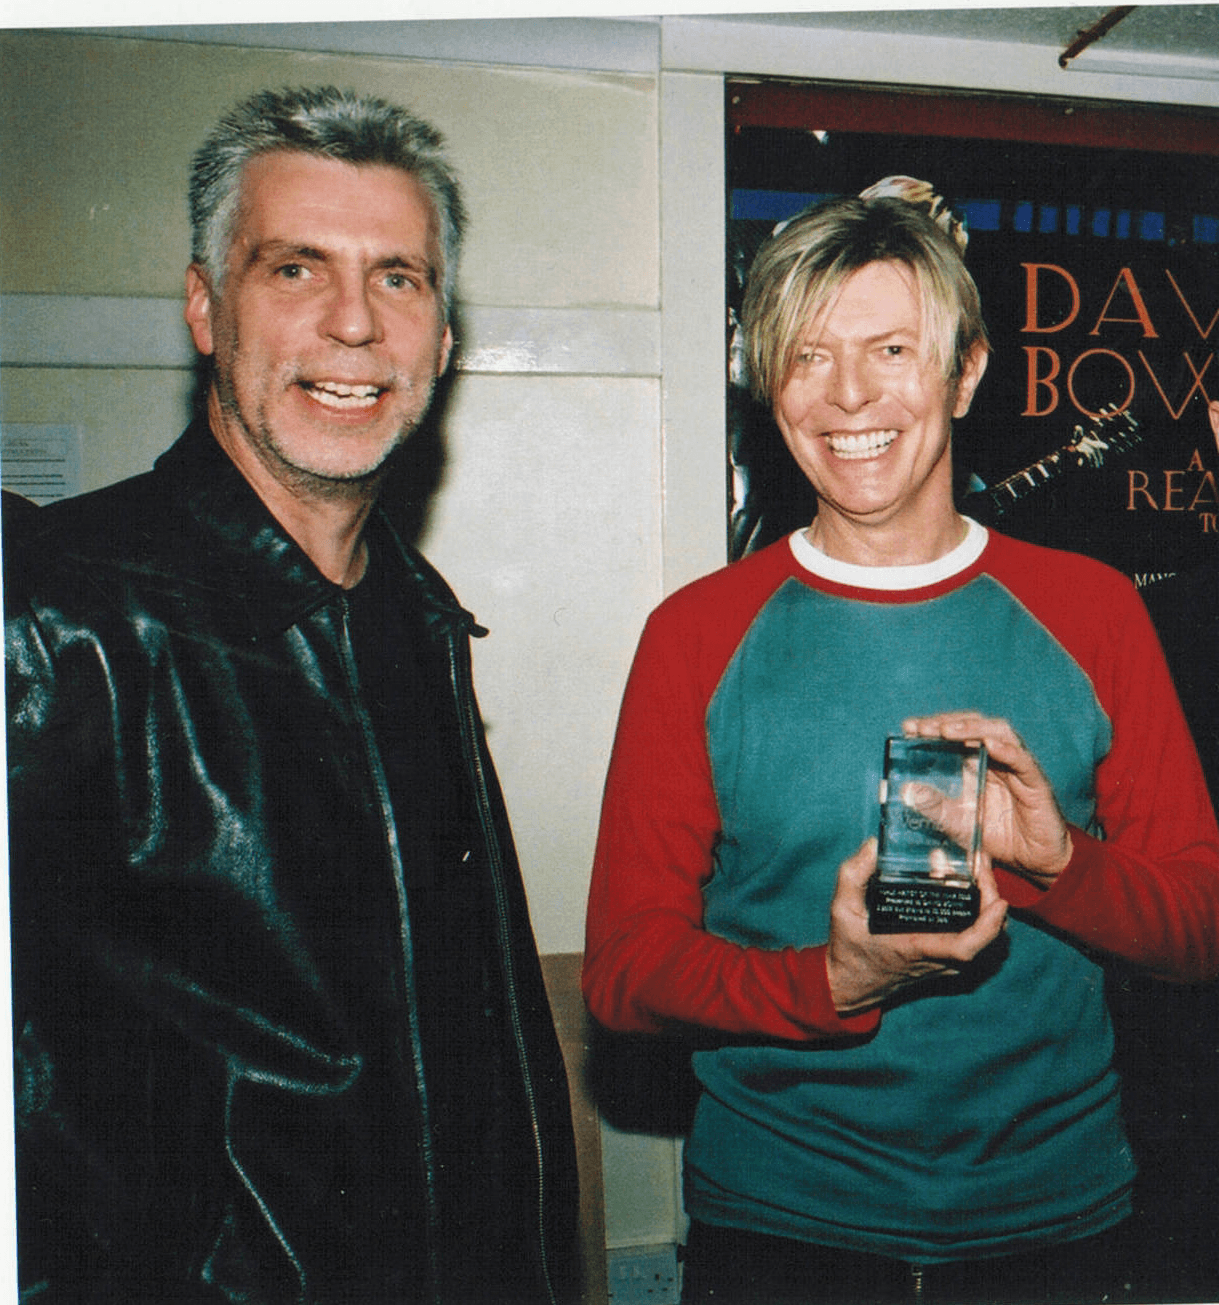 David Bowie with his tour promoter John Giddings